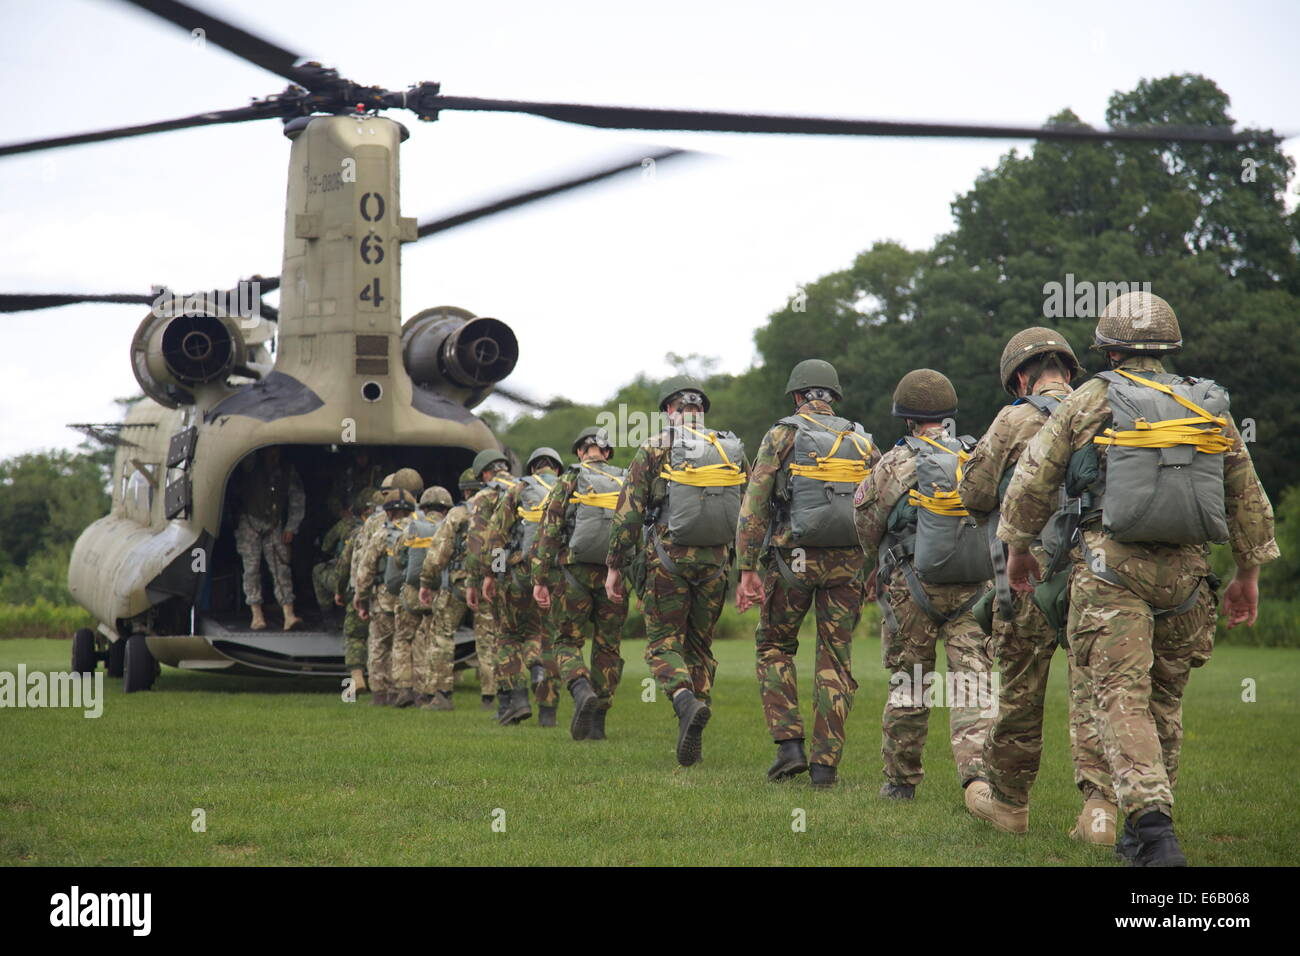 Canadian, British and Dutch military paratroopers board a U.S. Army CH-47 Chinook helicopter assigned to Bravo Company, - Stock Image